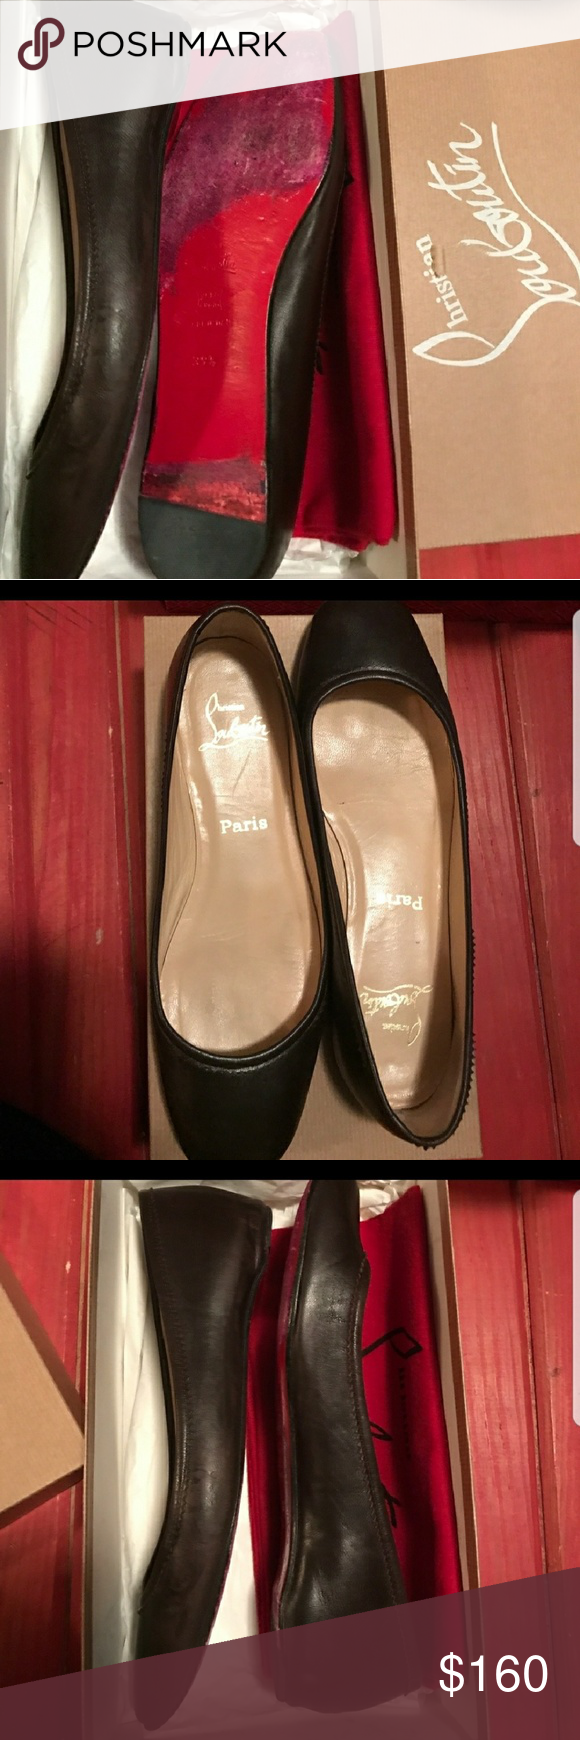 b1f3b6e9e5d9 Beautiful gently used red bottom. Cute flats Christian Louboutin Shoes  Flats   Loafers